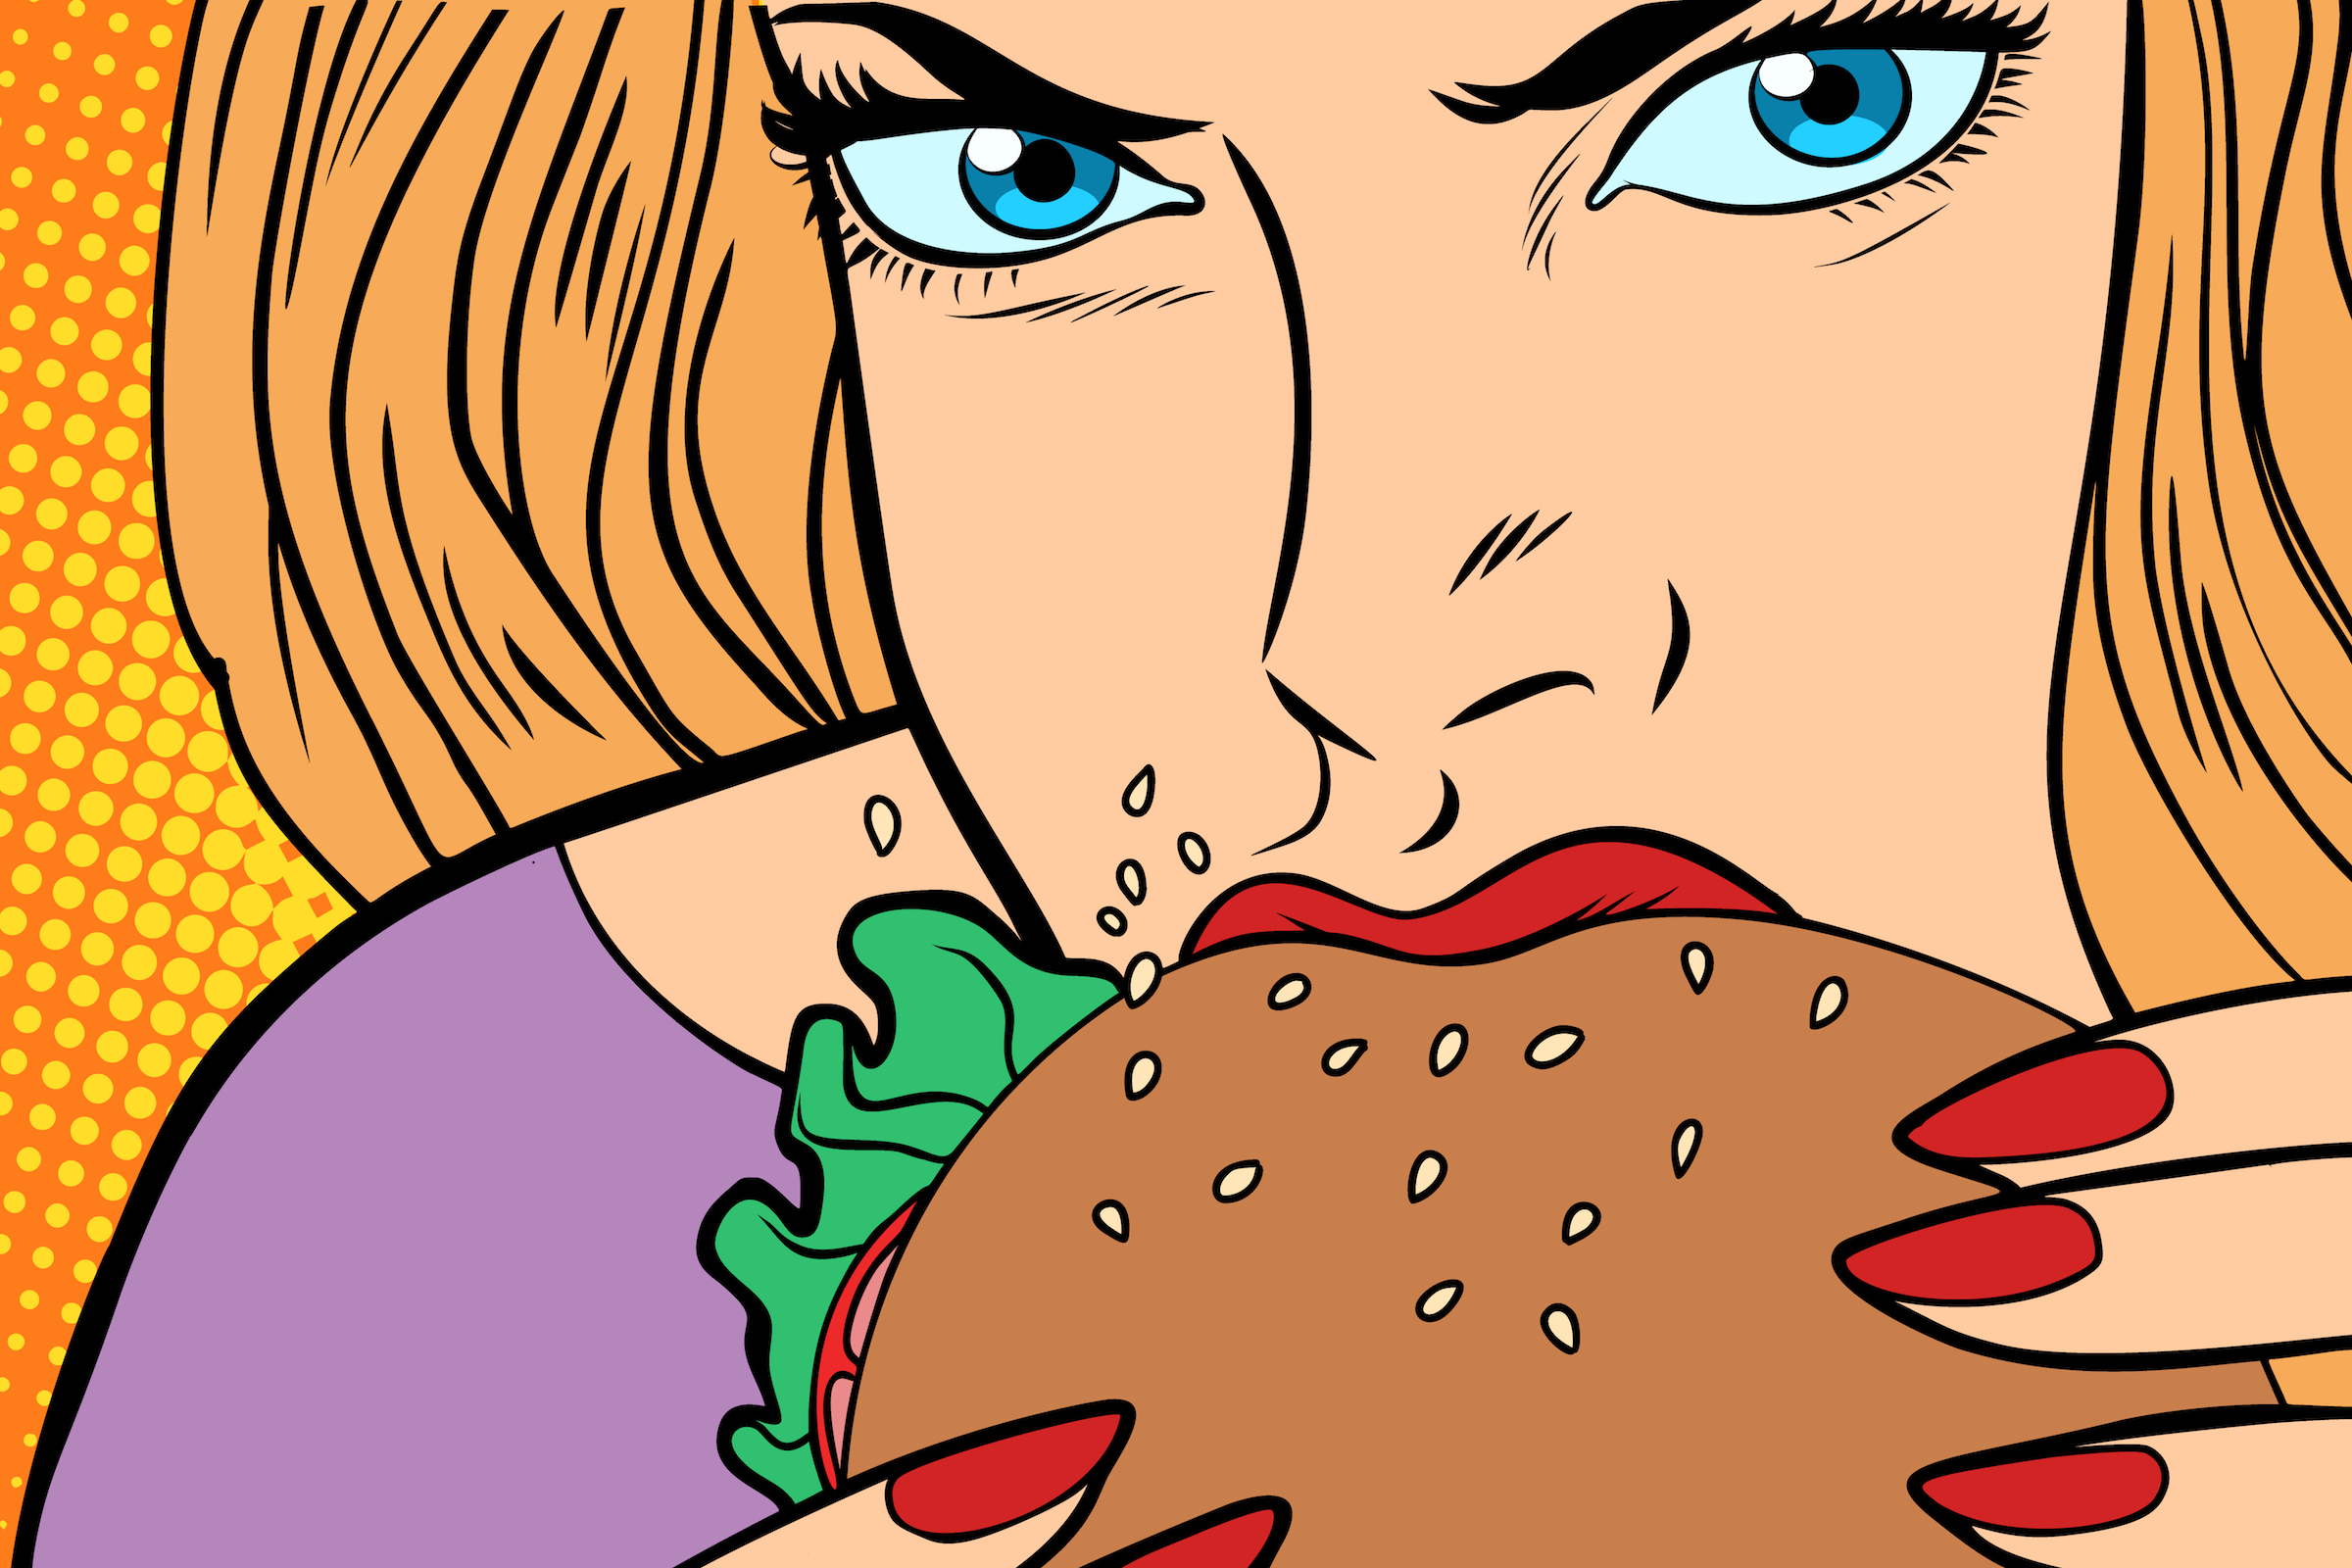 The experts have found that being hangry, or a combination of hunger and anger, likely results from a complicated emotional response that involves personality, biology, and emotional cues.